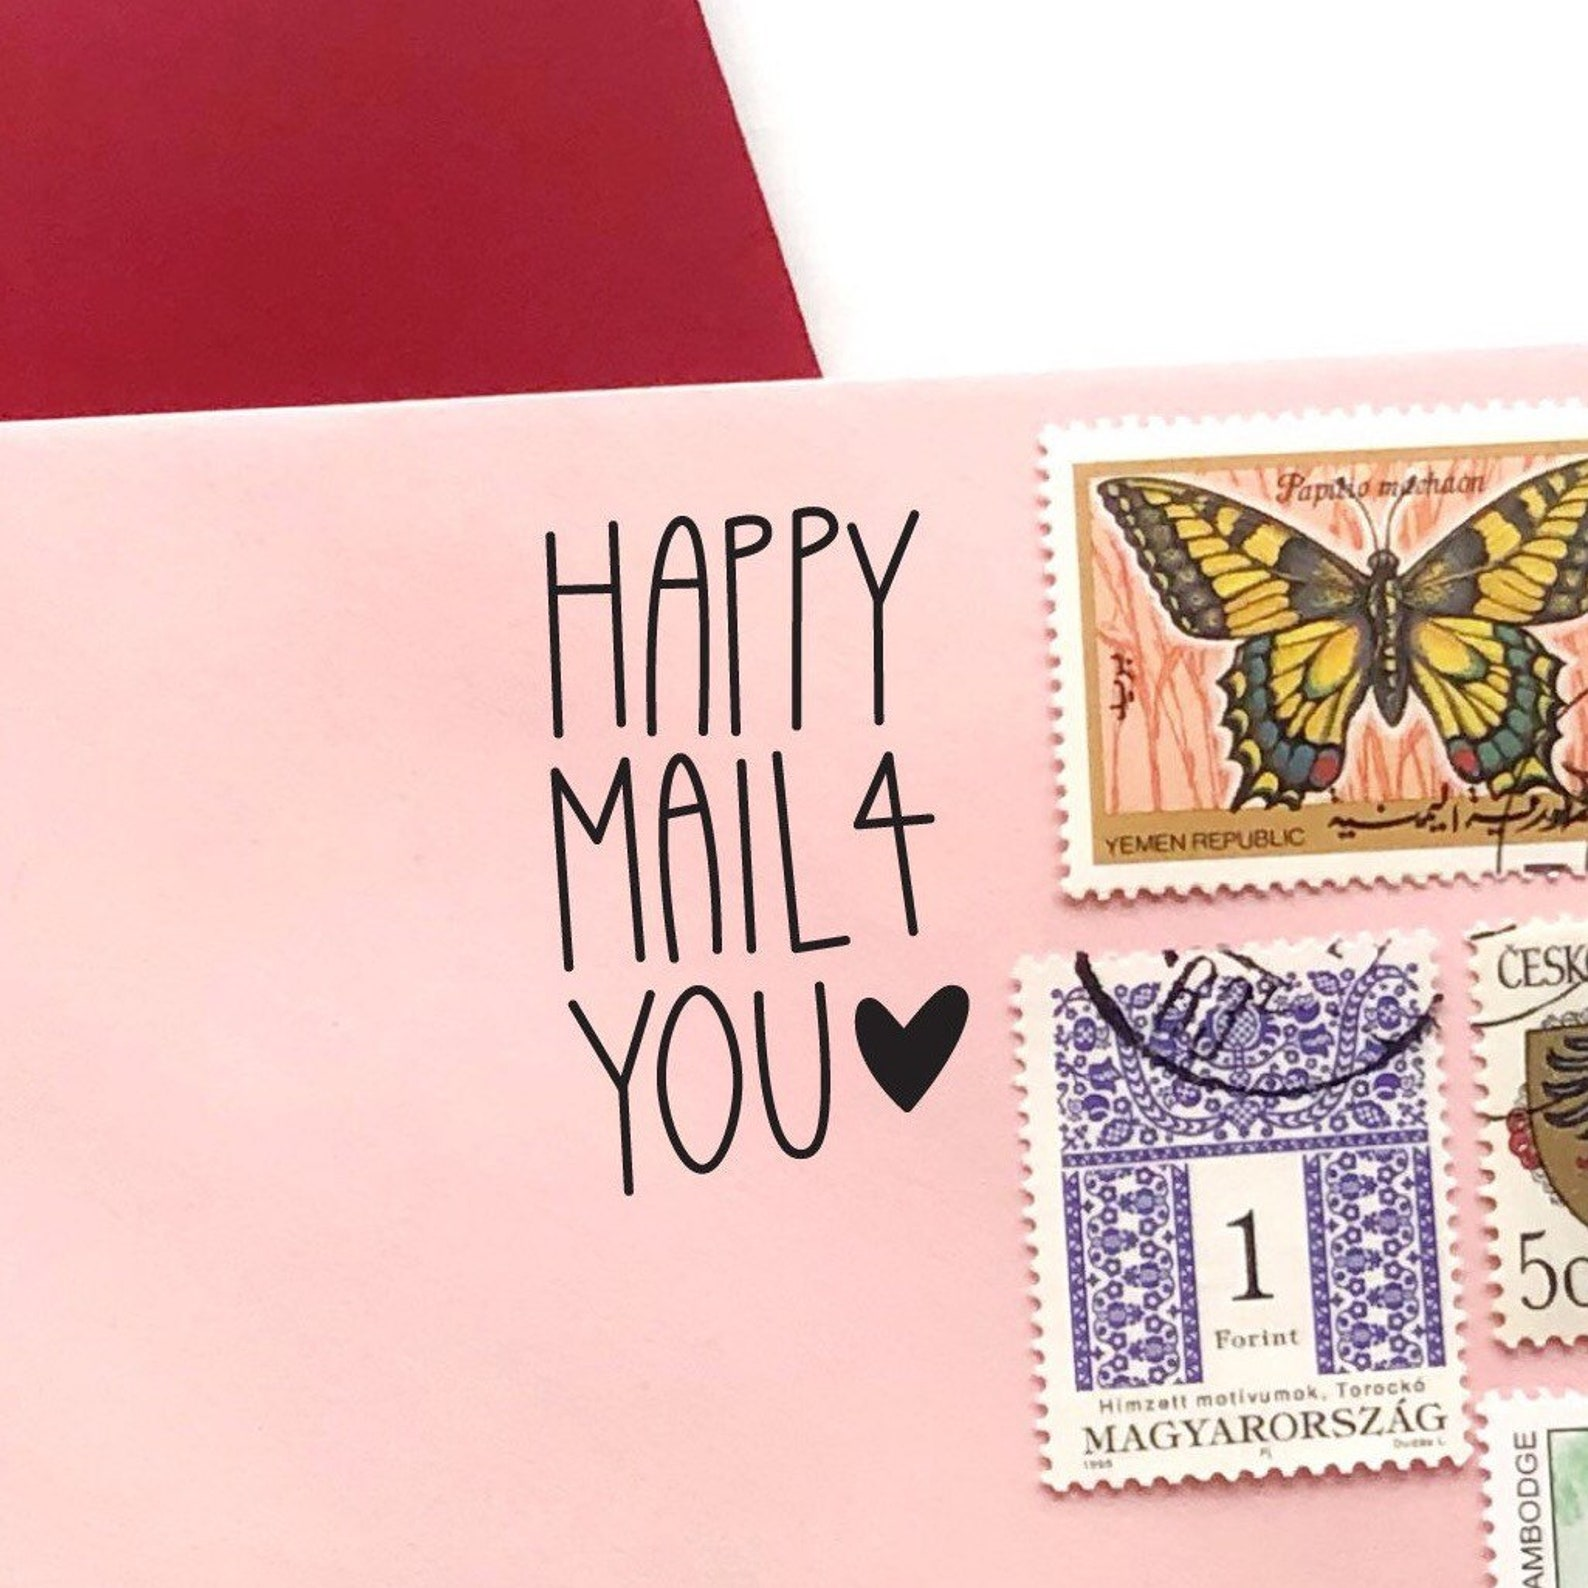 Happy Mail 4 You, Snail Mail Stamp